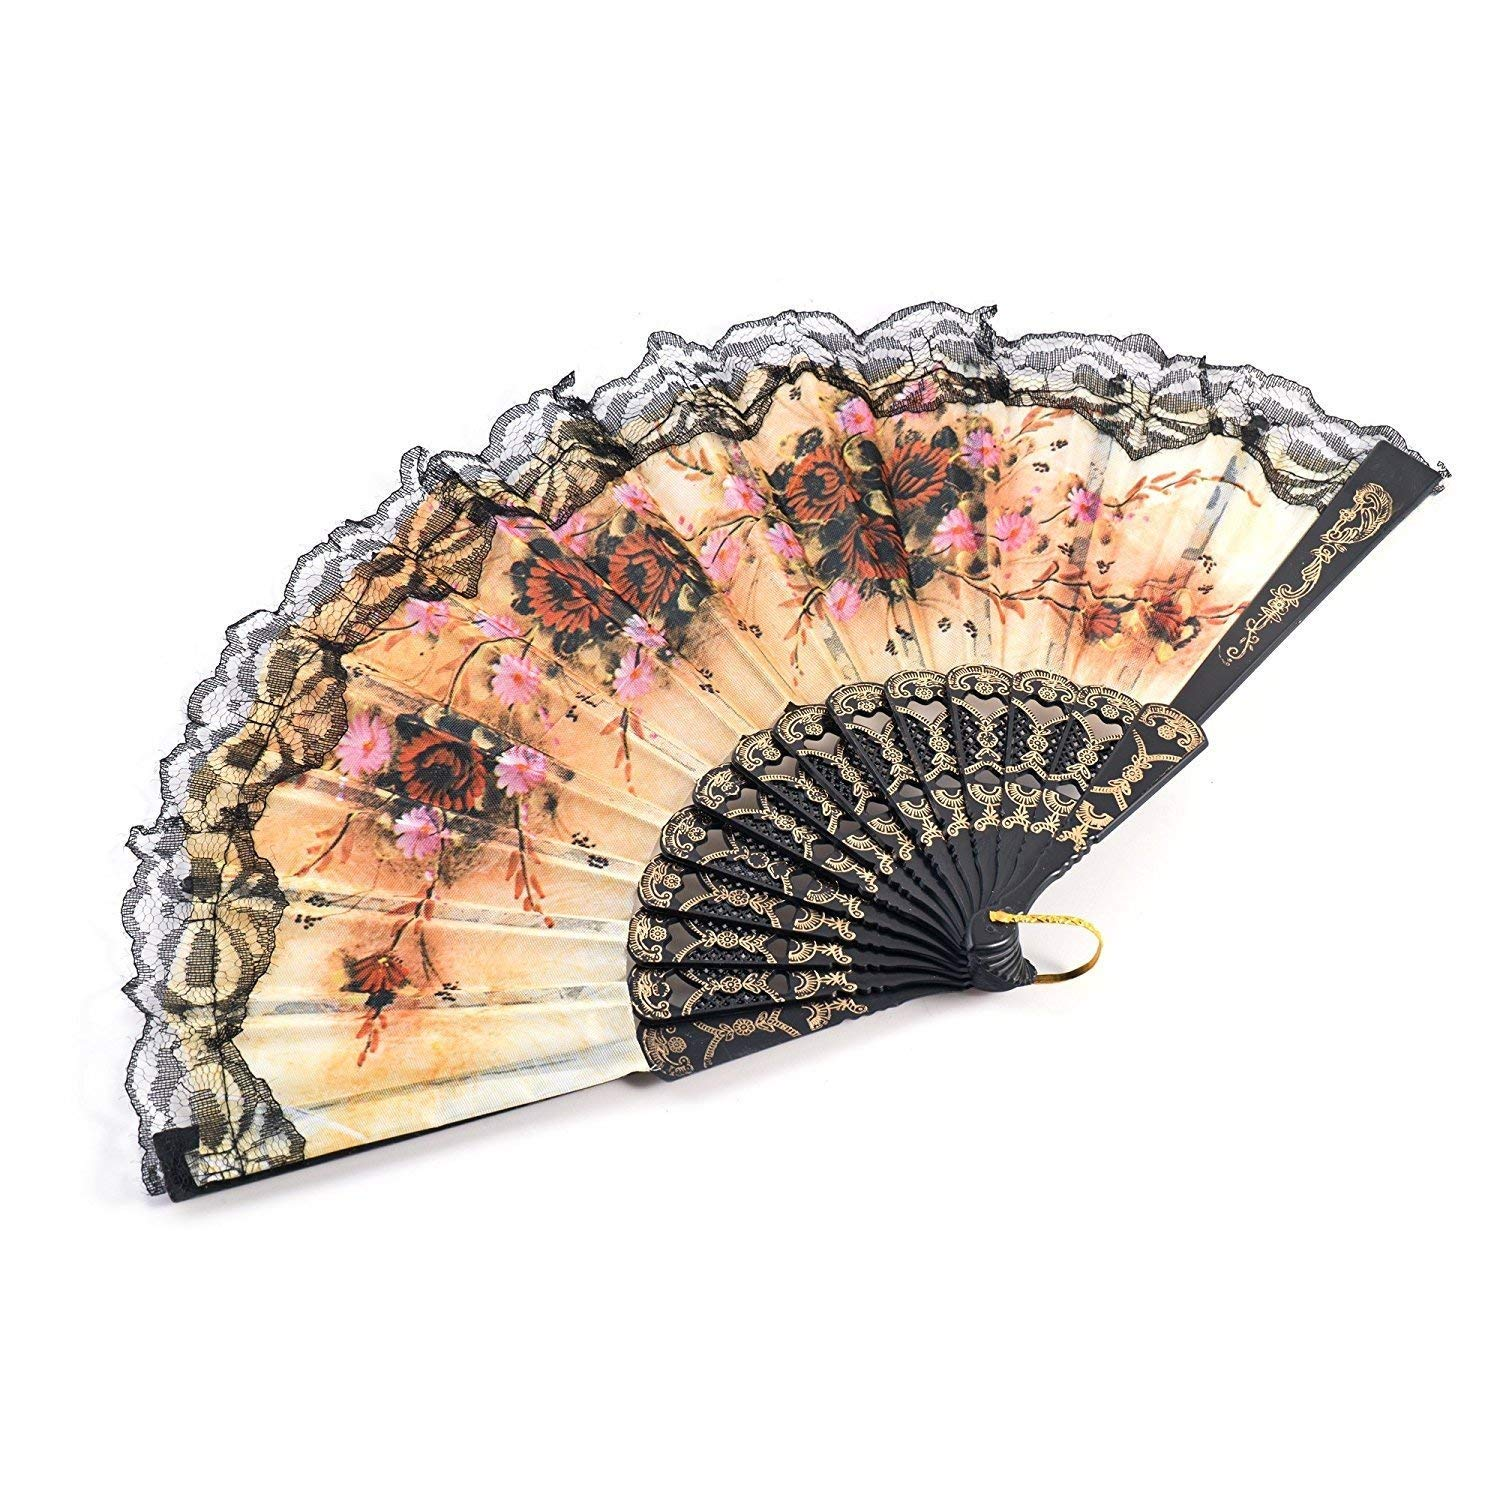 woaiwo-q Spanish Floral Folding Hand Fan Flowers Pattern Lace Handheld Fans Size 9'', Pack of 50 Random Color Suitable For Wedding Dancing Church Party Gifts